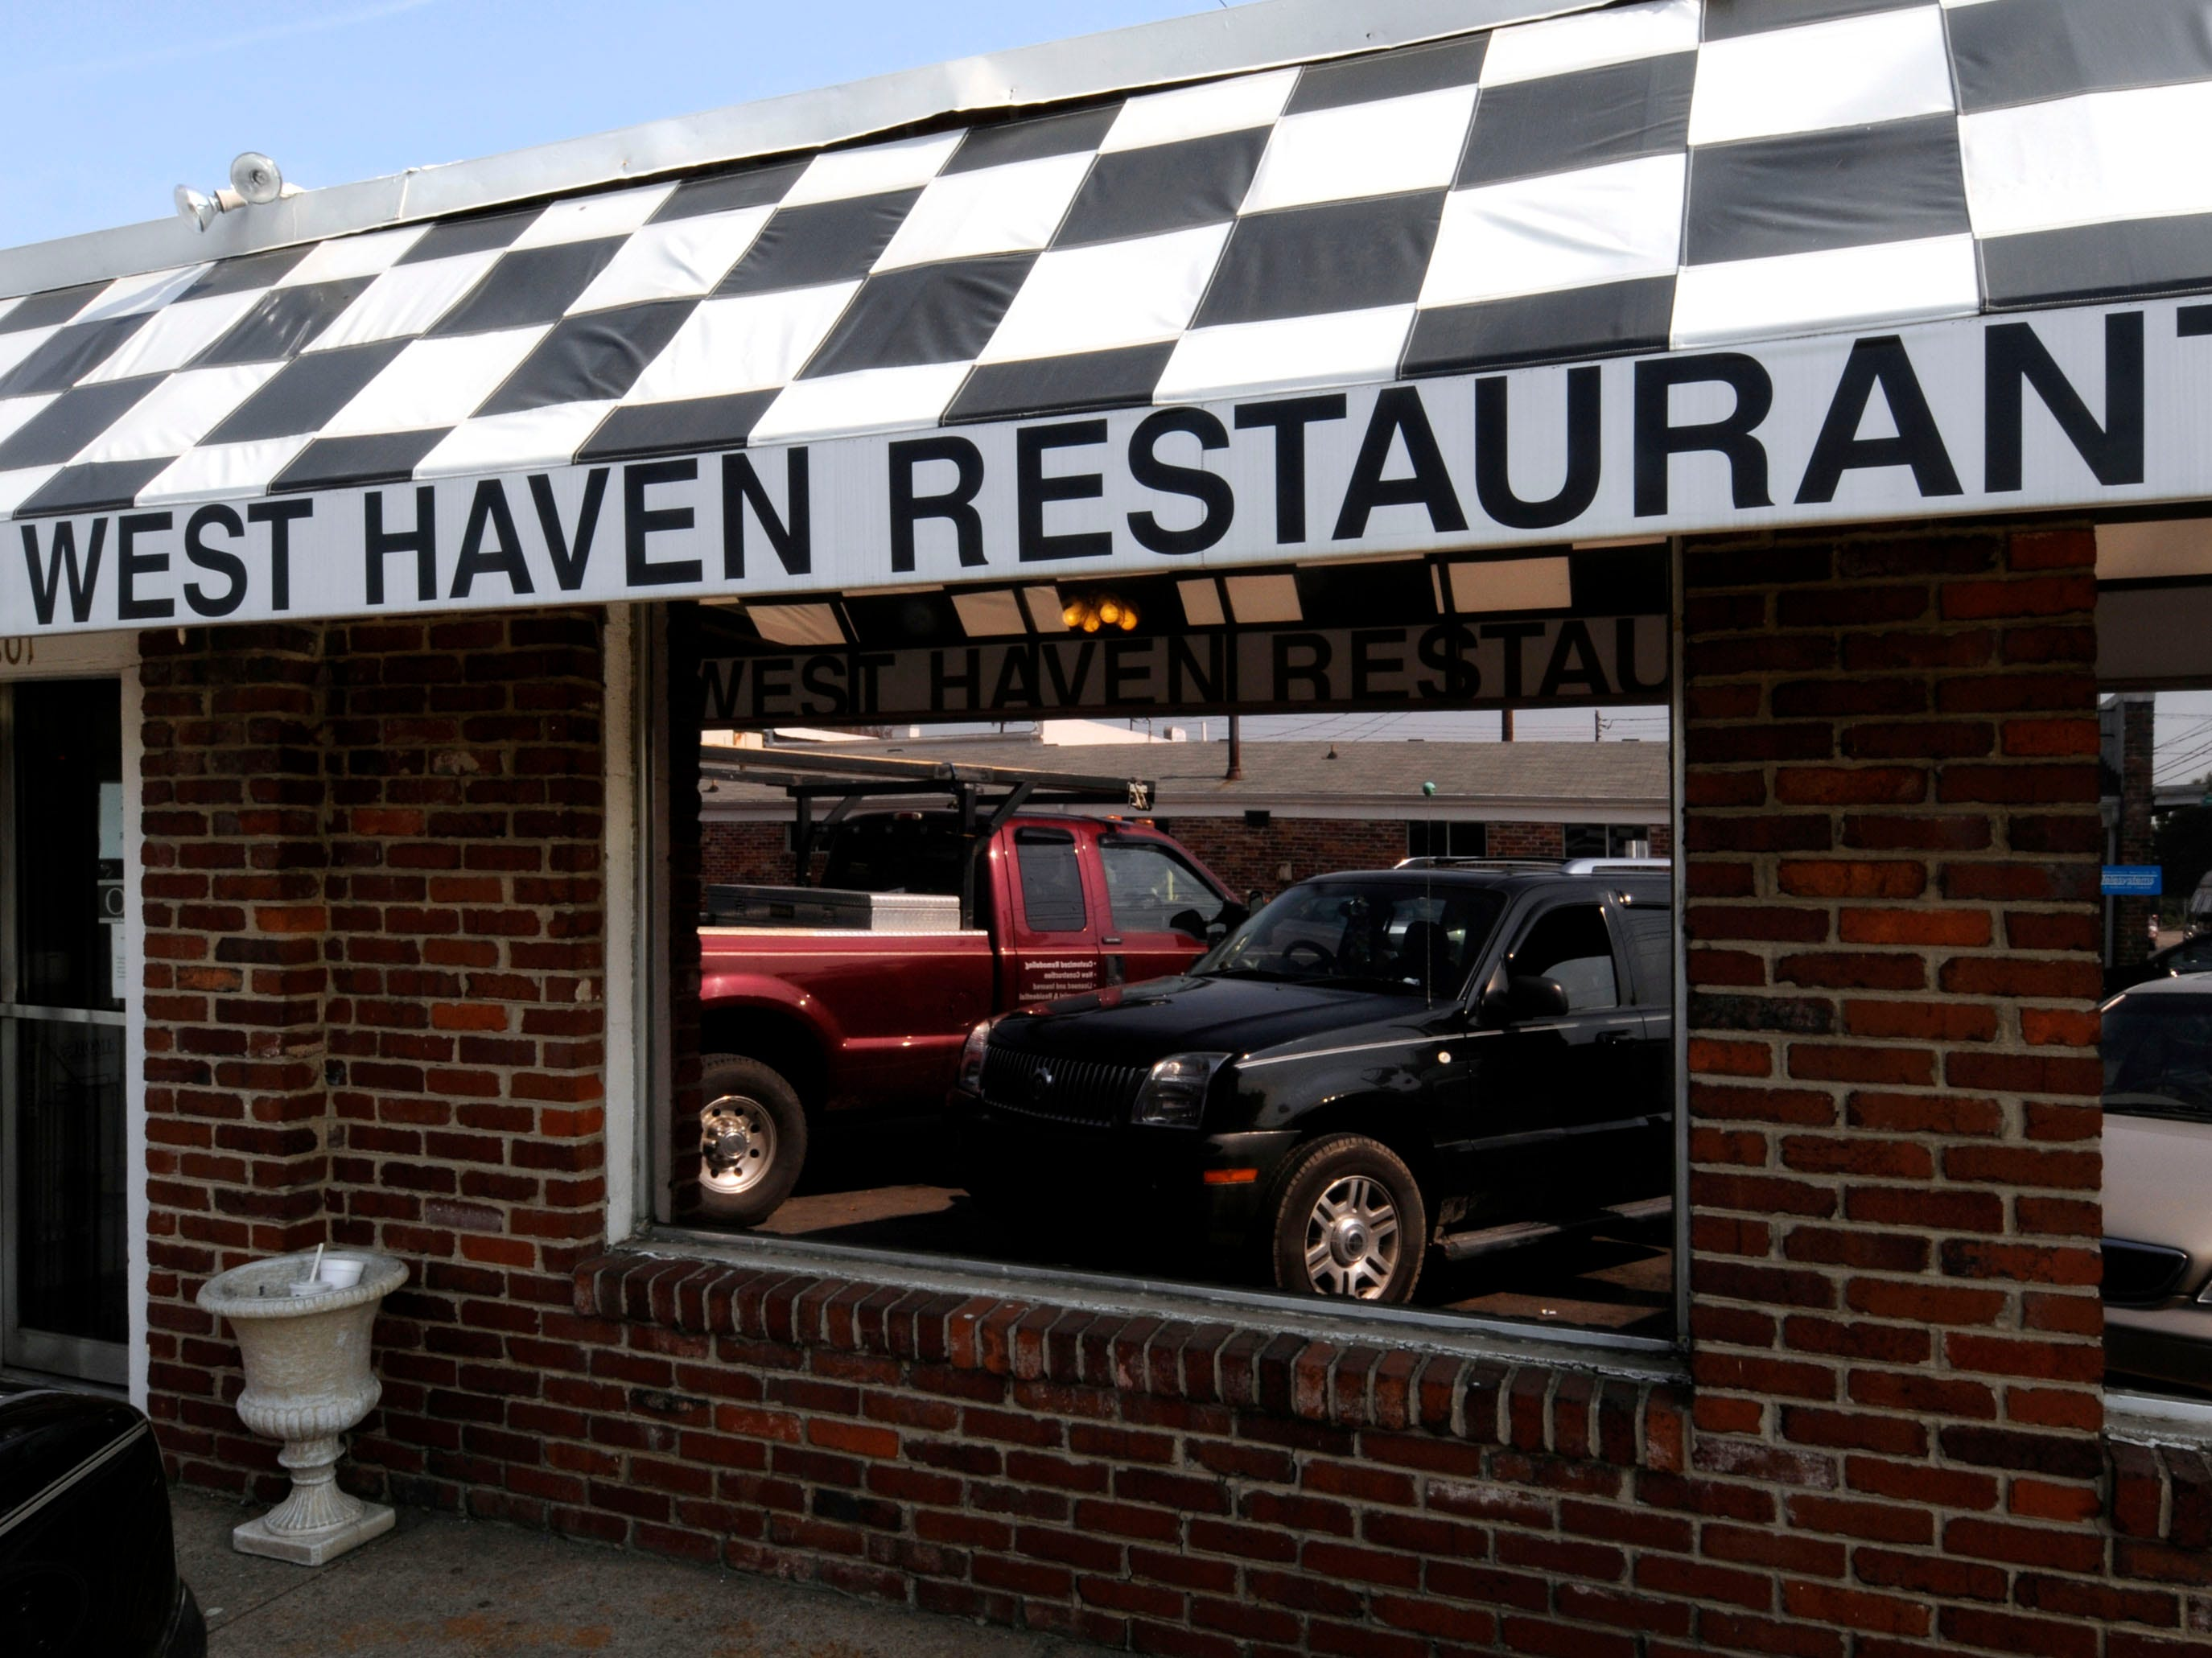 West Haven Restauran in 2008.